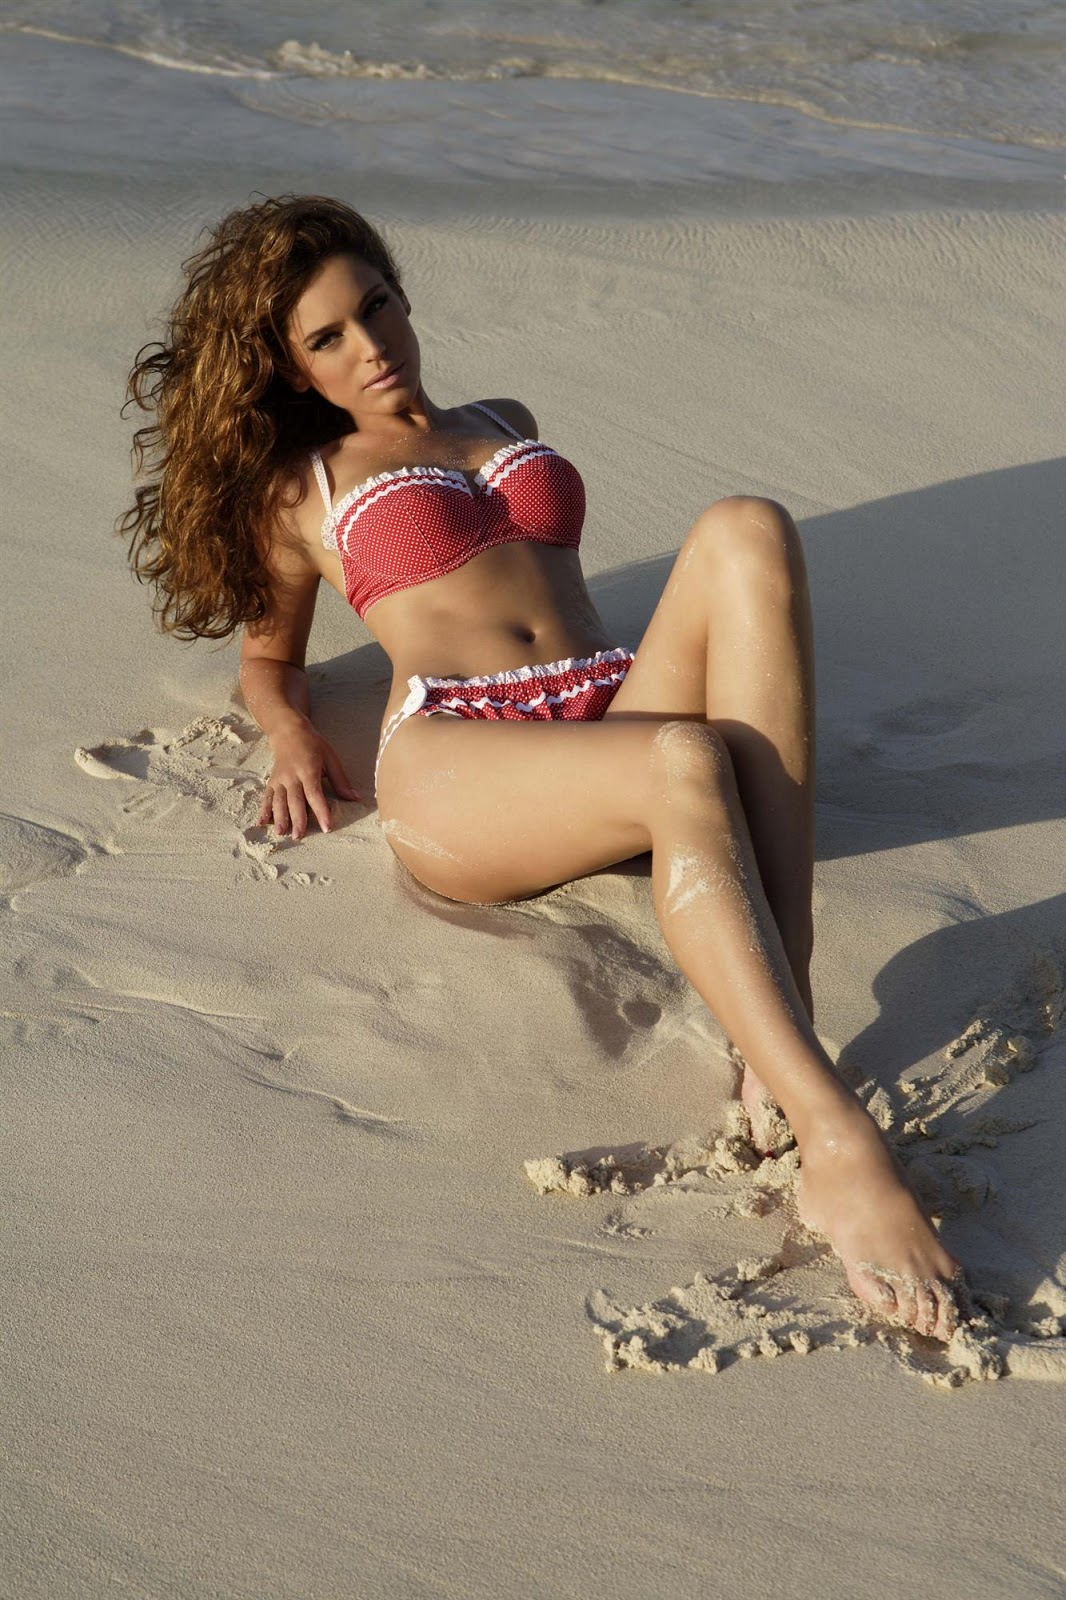 Kelly+Brook+2006+Calendar+2 18 Best Kelly Brook Photos in Swimwear